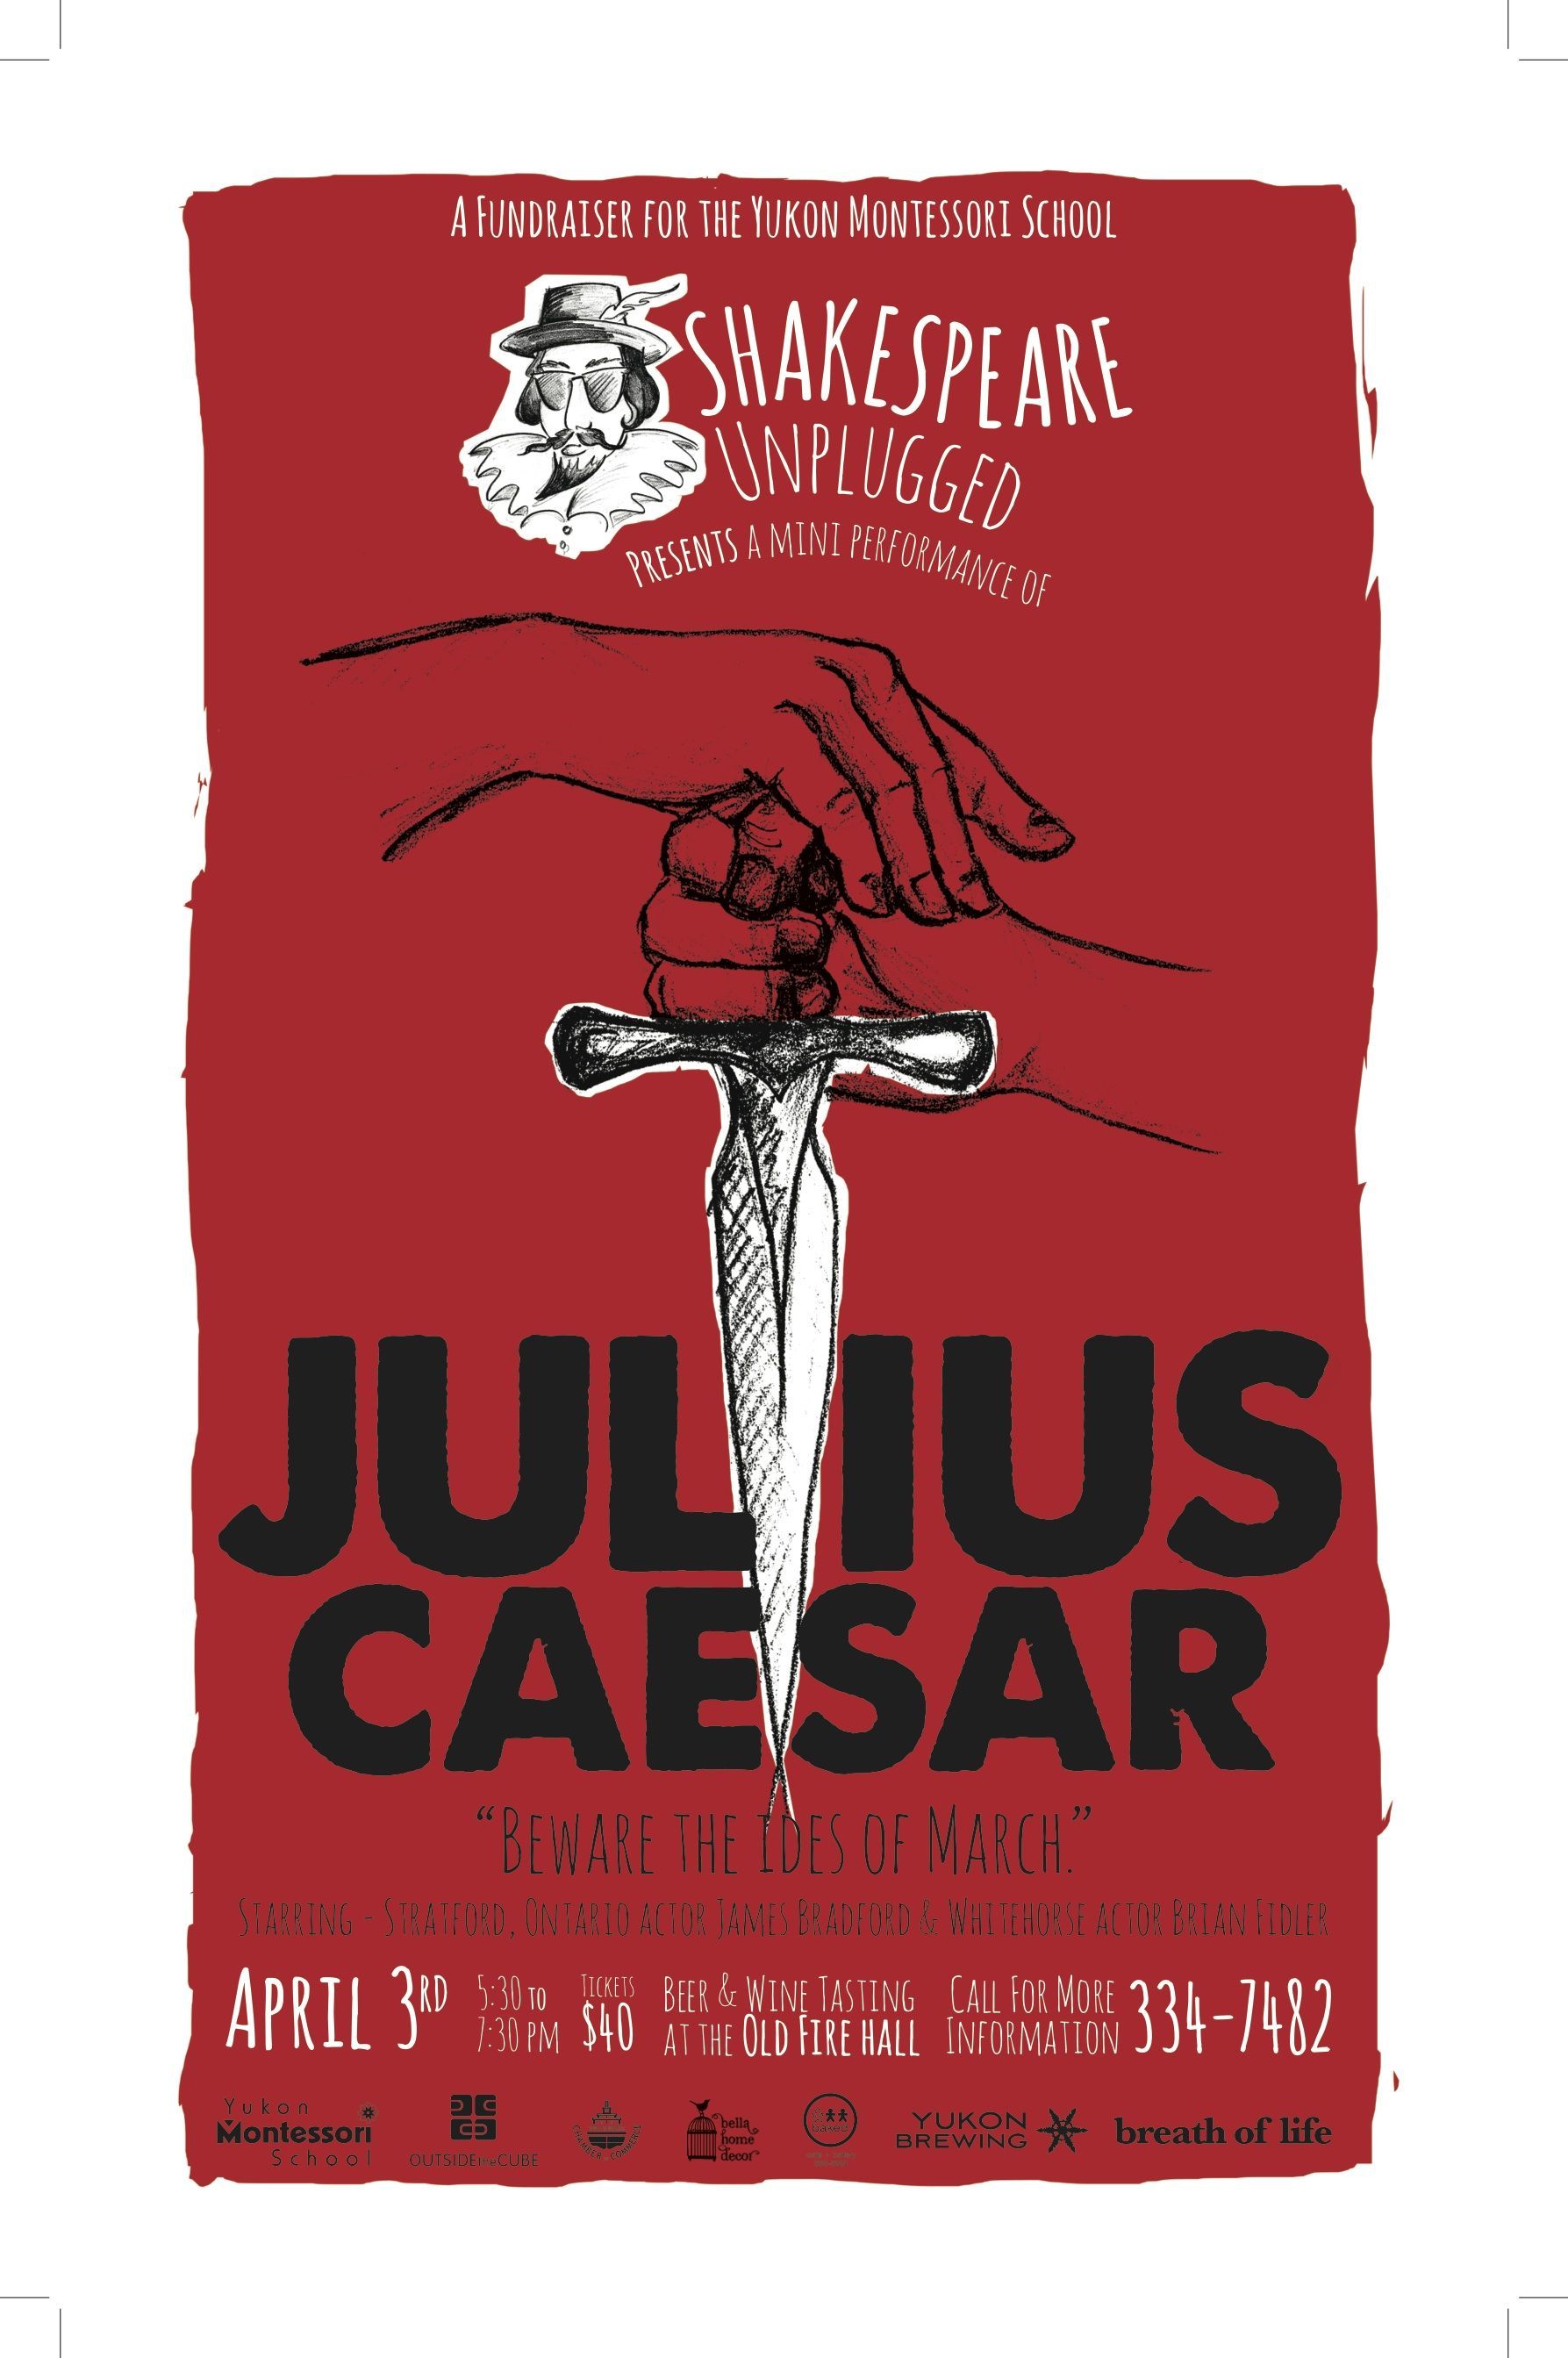 a research on the book julius caesar View julius caesar research papers on academiaedu for free.